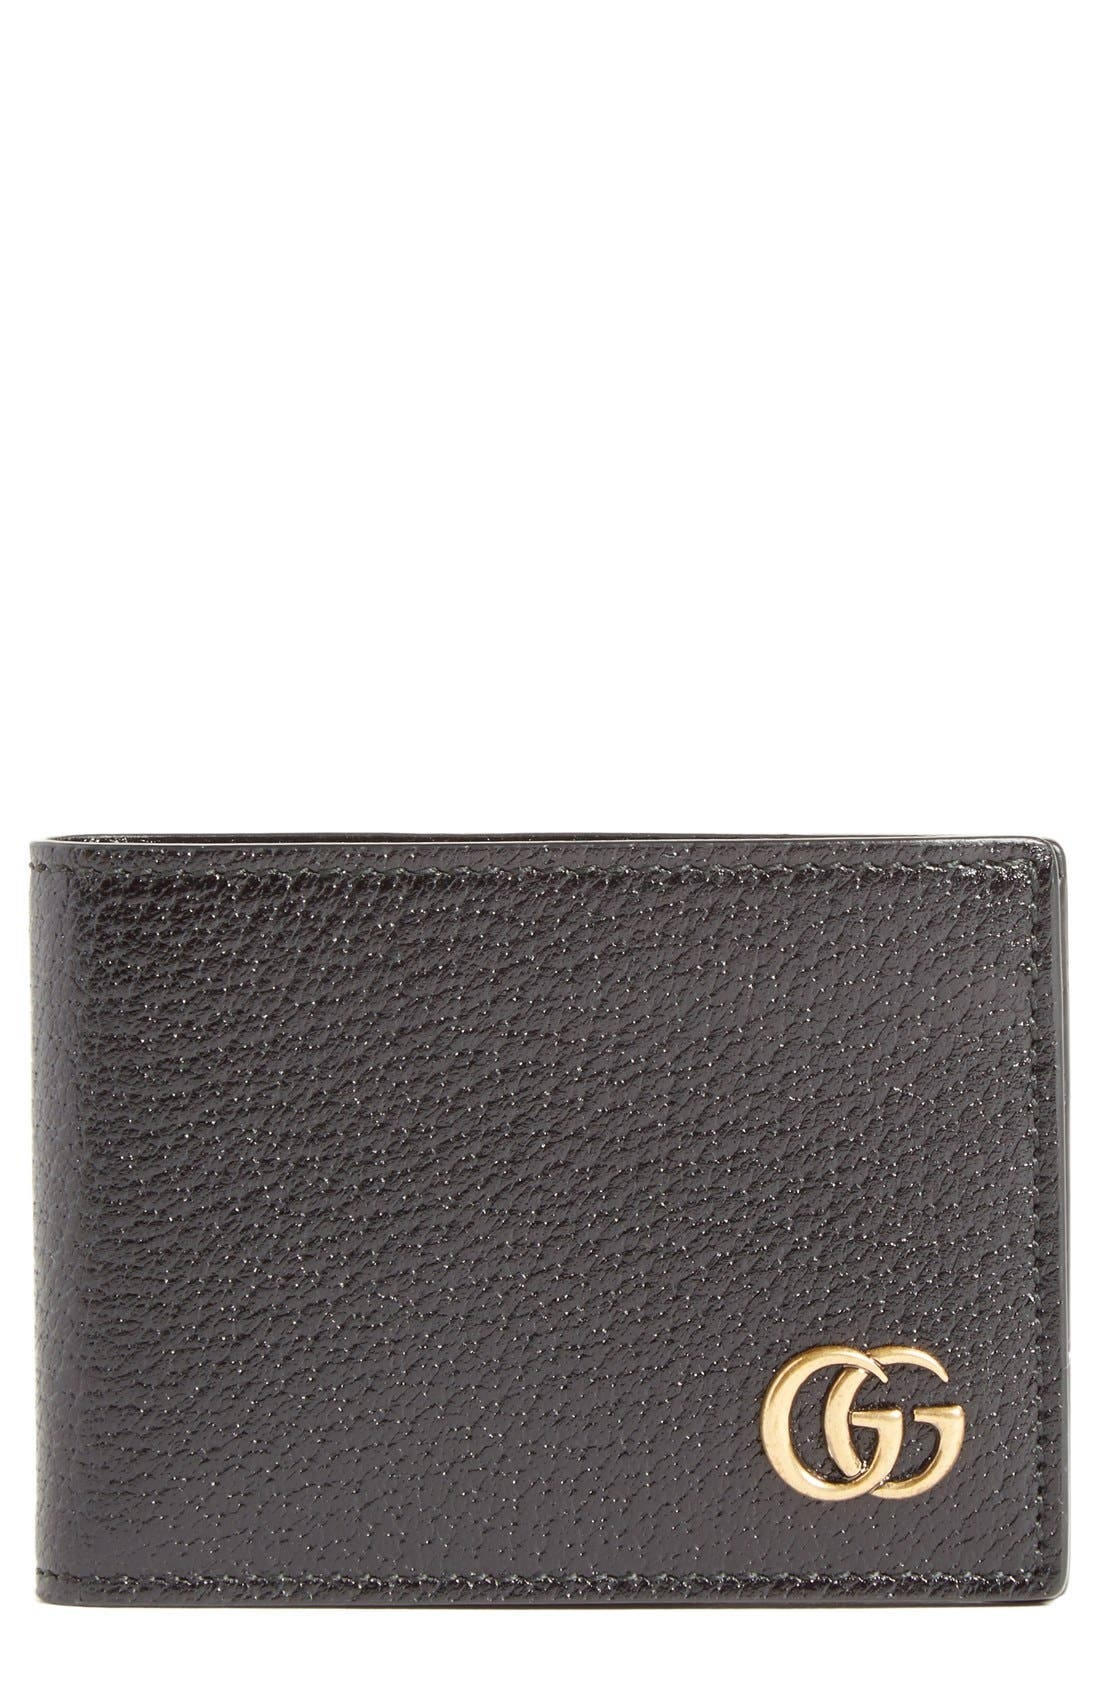 Marmont Leather Wallet,                         Main,                         color, Black